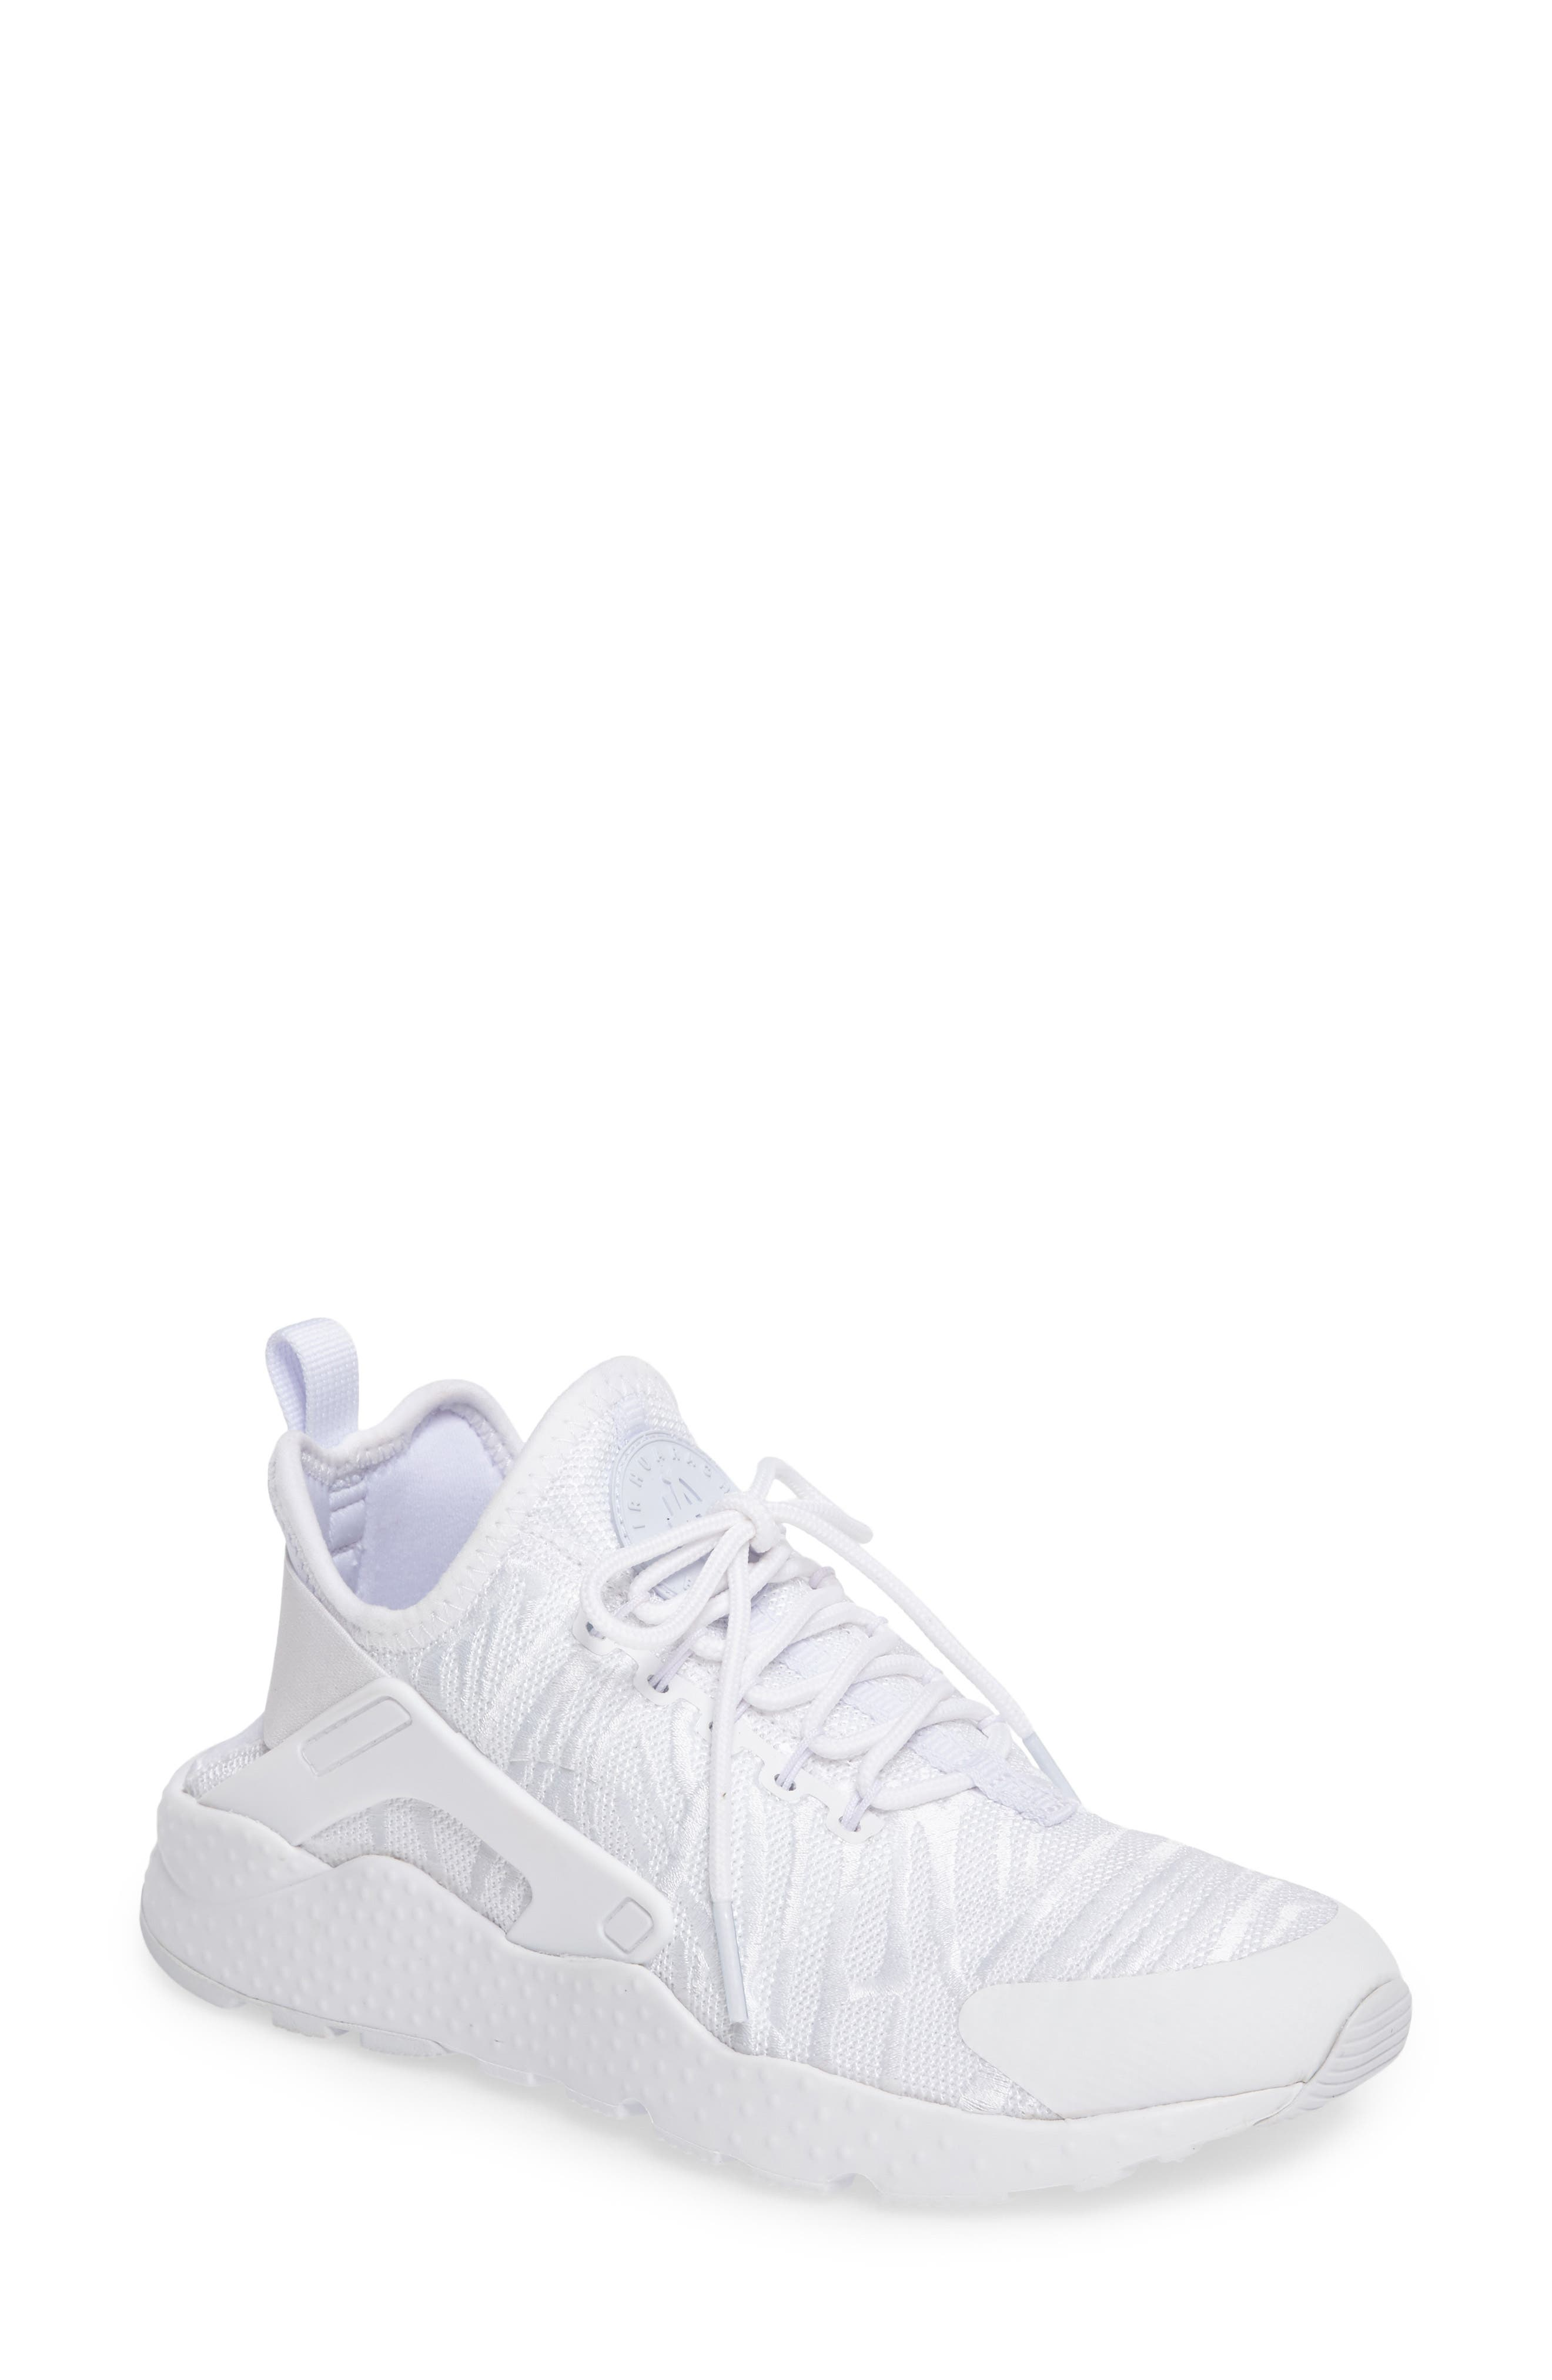 Alternate Image 1 Selected - Nike Air Huarache Run Ultra Premium Sneaker (Women)